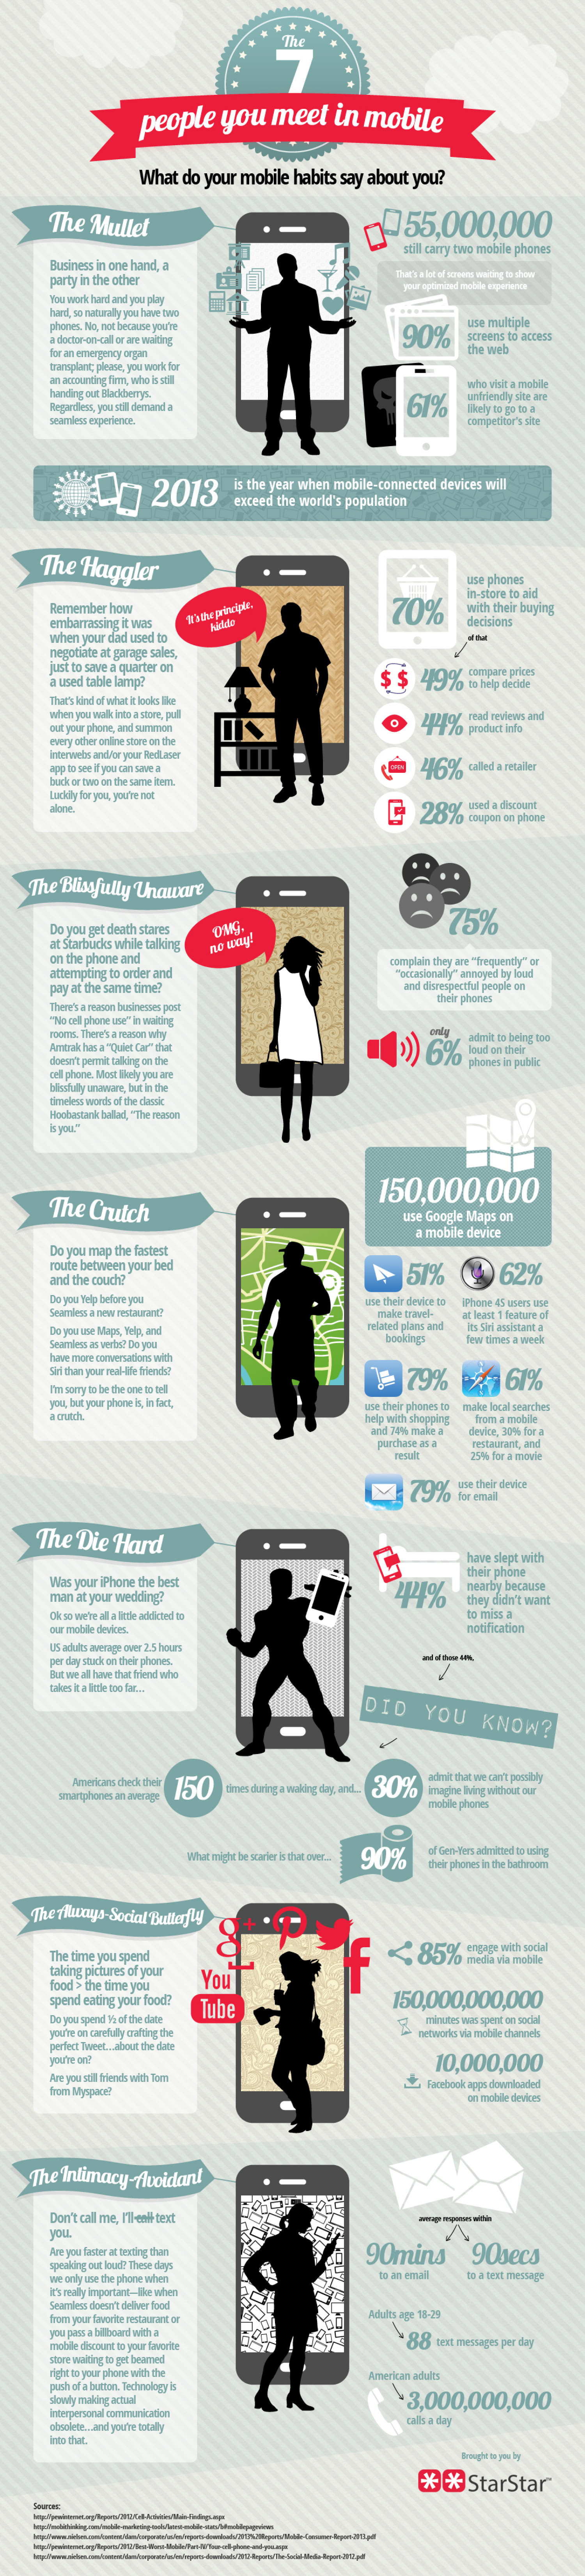 7 people you meet in mobile Infographic